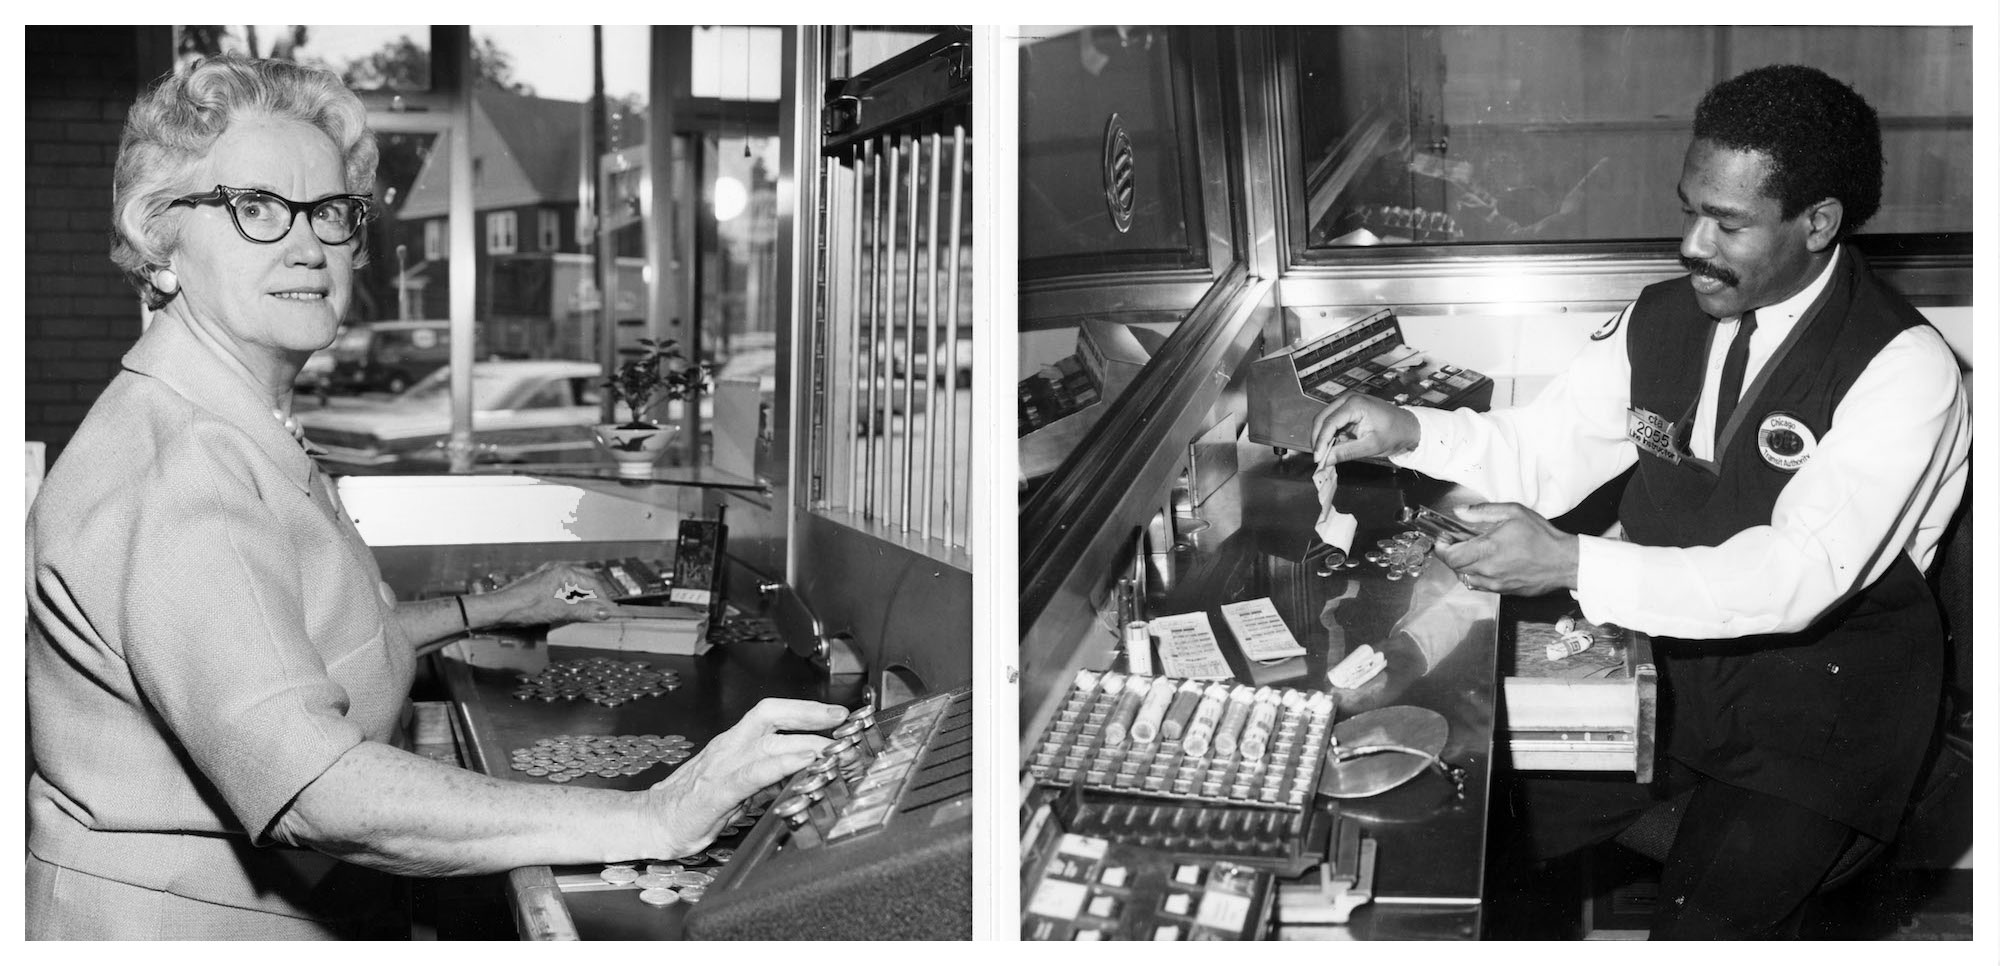 Tokens could be purchased at CTA's corporate headquarters, or even at local grocery stores. But many riders bought them at 'L' stations from a ticket booth attendant -- like the ones pictured here in 1965 (left) and 1987 (right). (Courtesy Chicago Transit Authority)